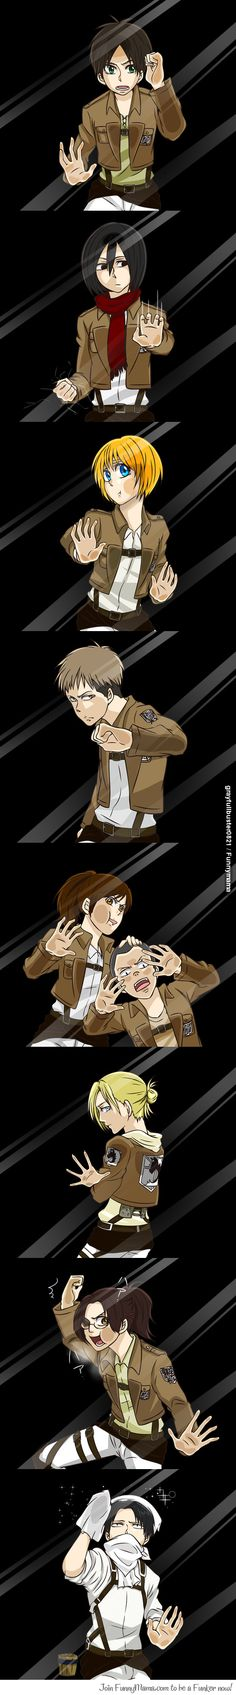 Attack on titan! This is what all the characters would do if they were trapped inside a glass box...